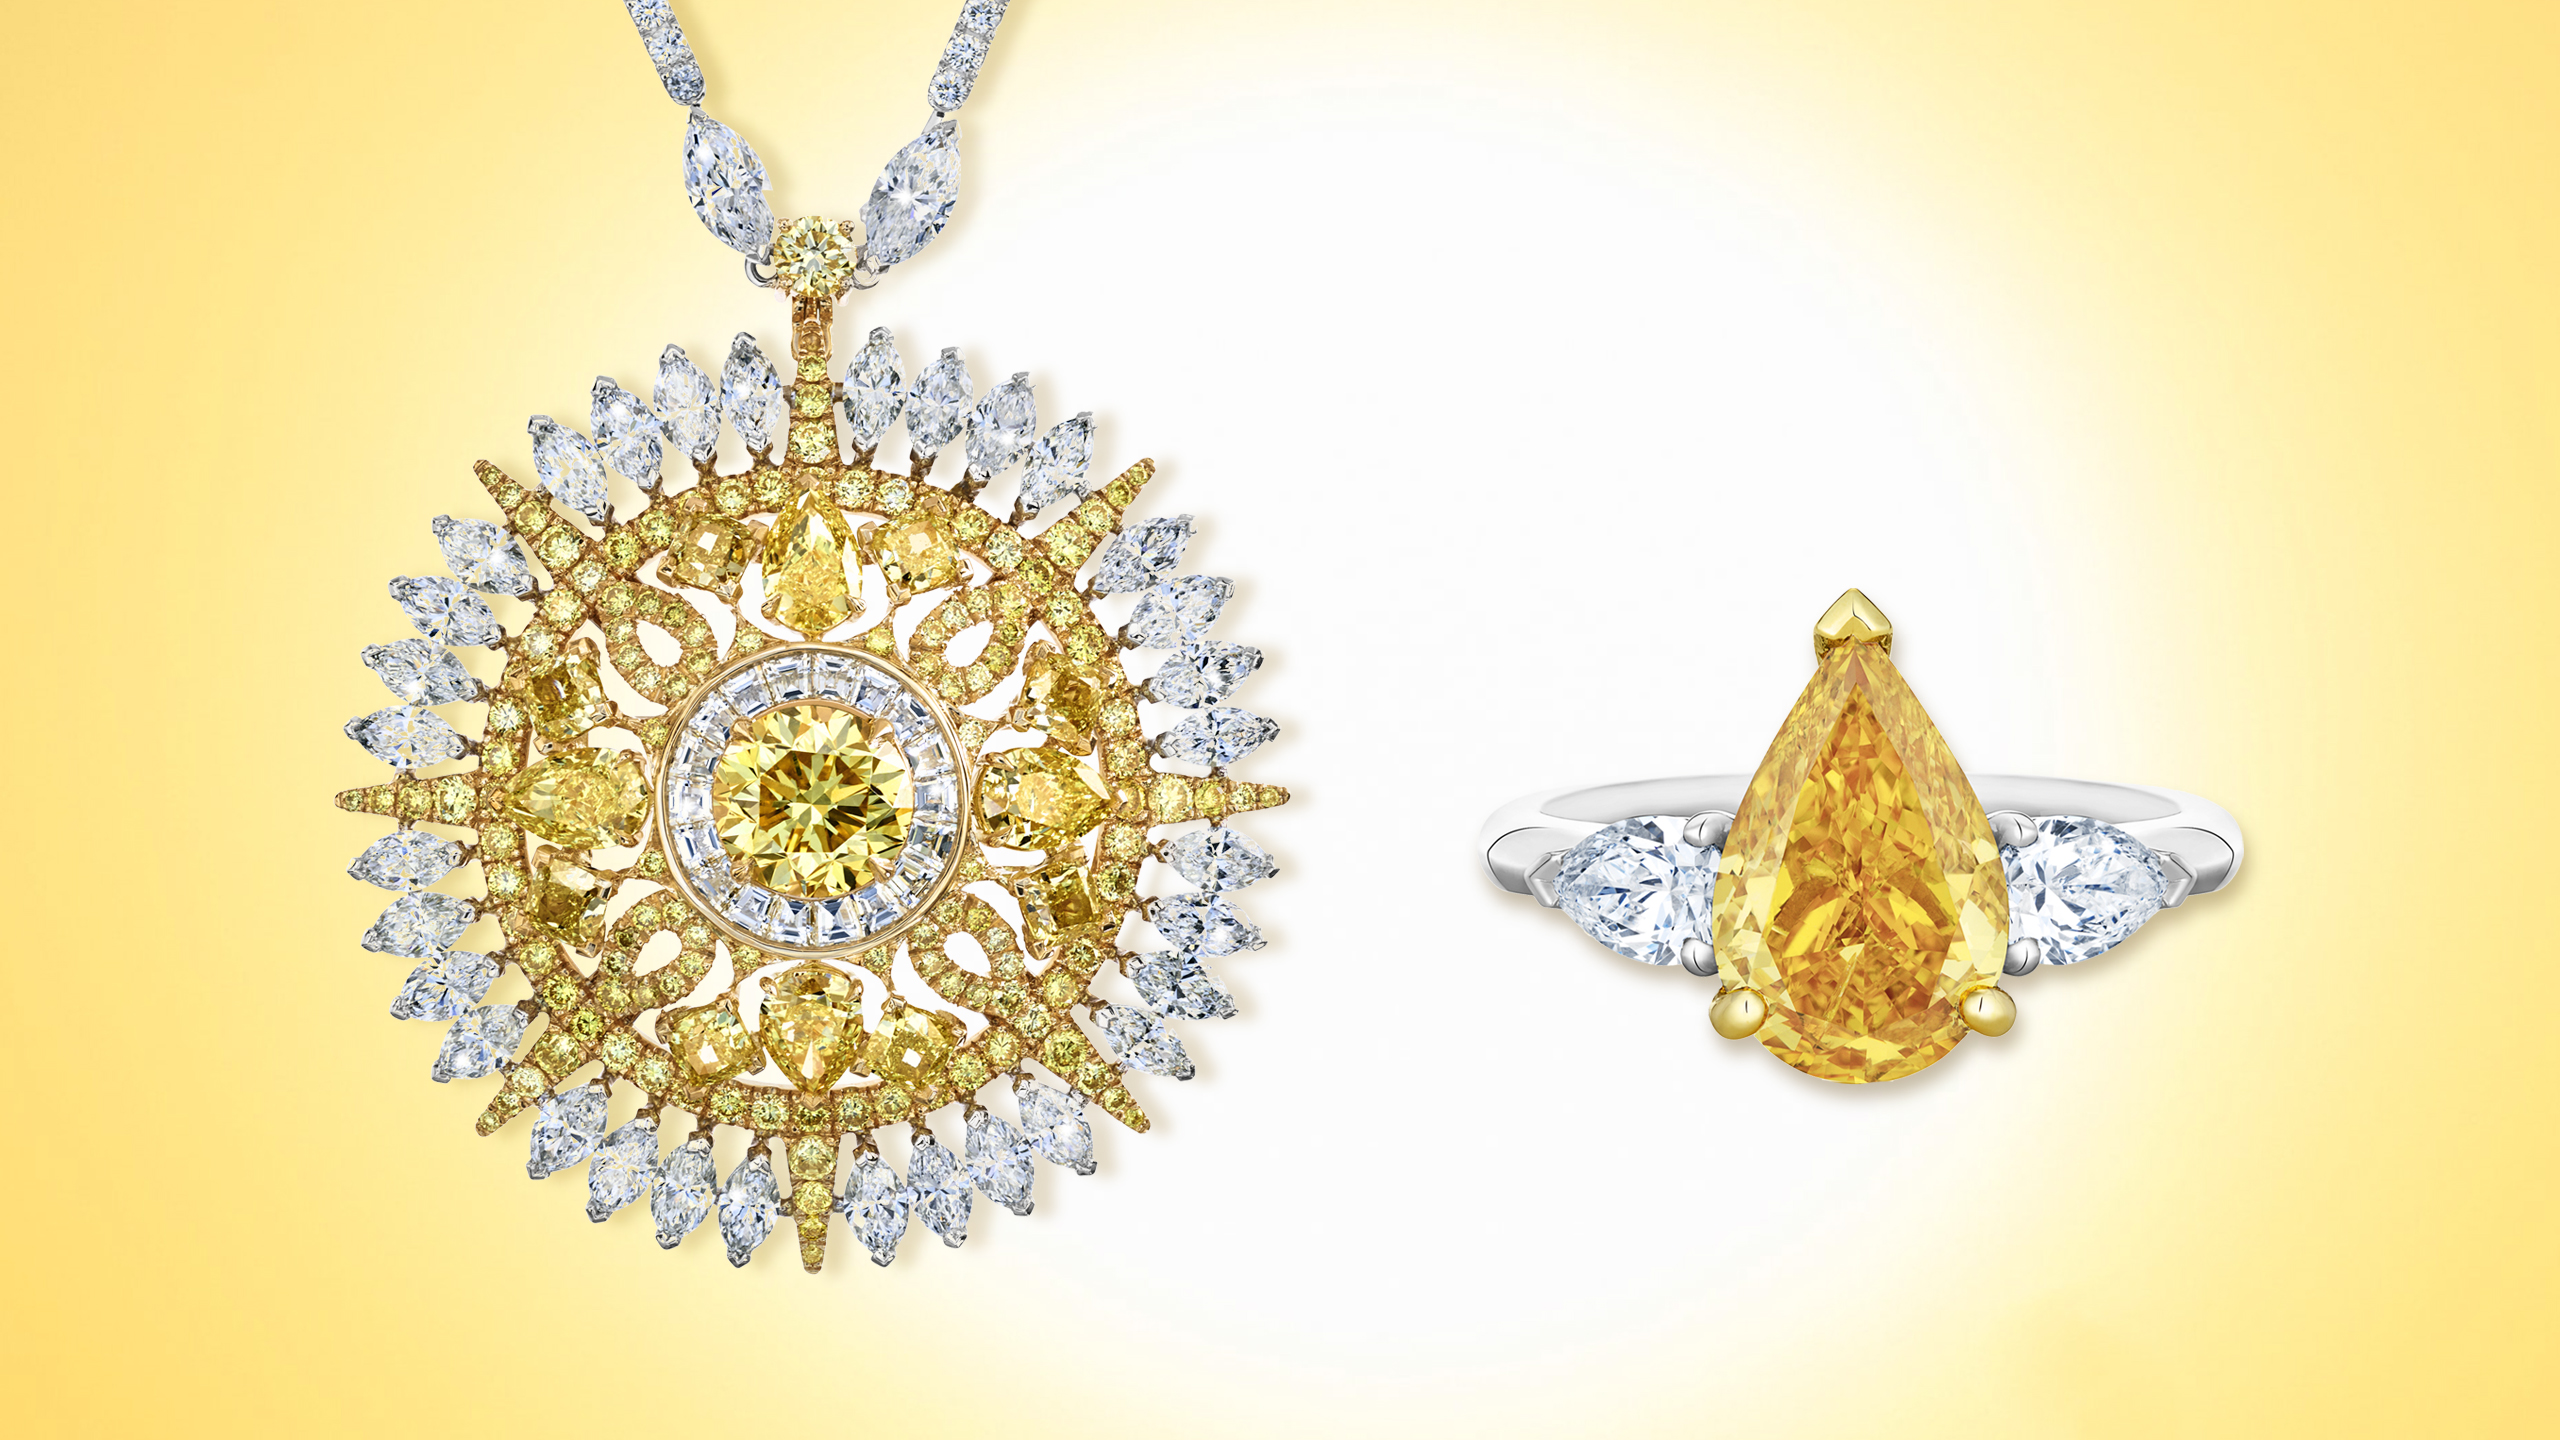 The Ra Medallion Necklace & Solitaire Ring: yellow round cut diamond pendant necklace & pear shaped yellow diamond ring